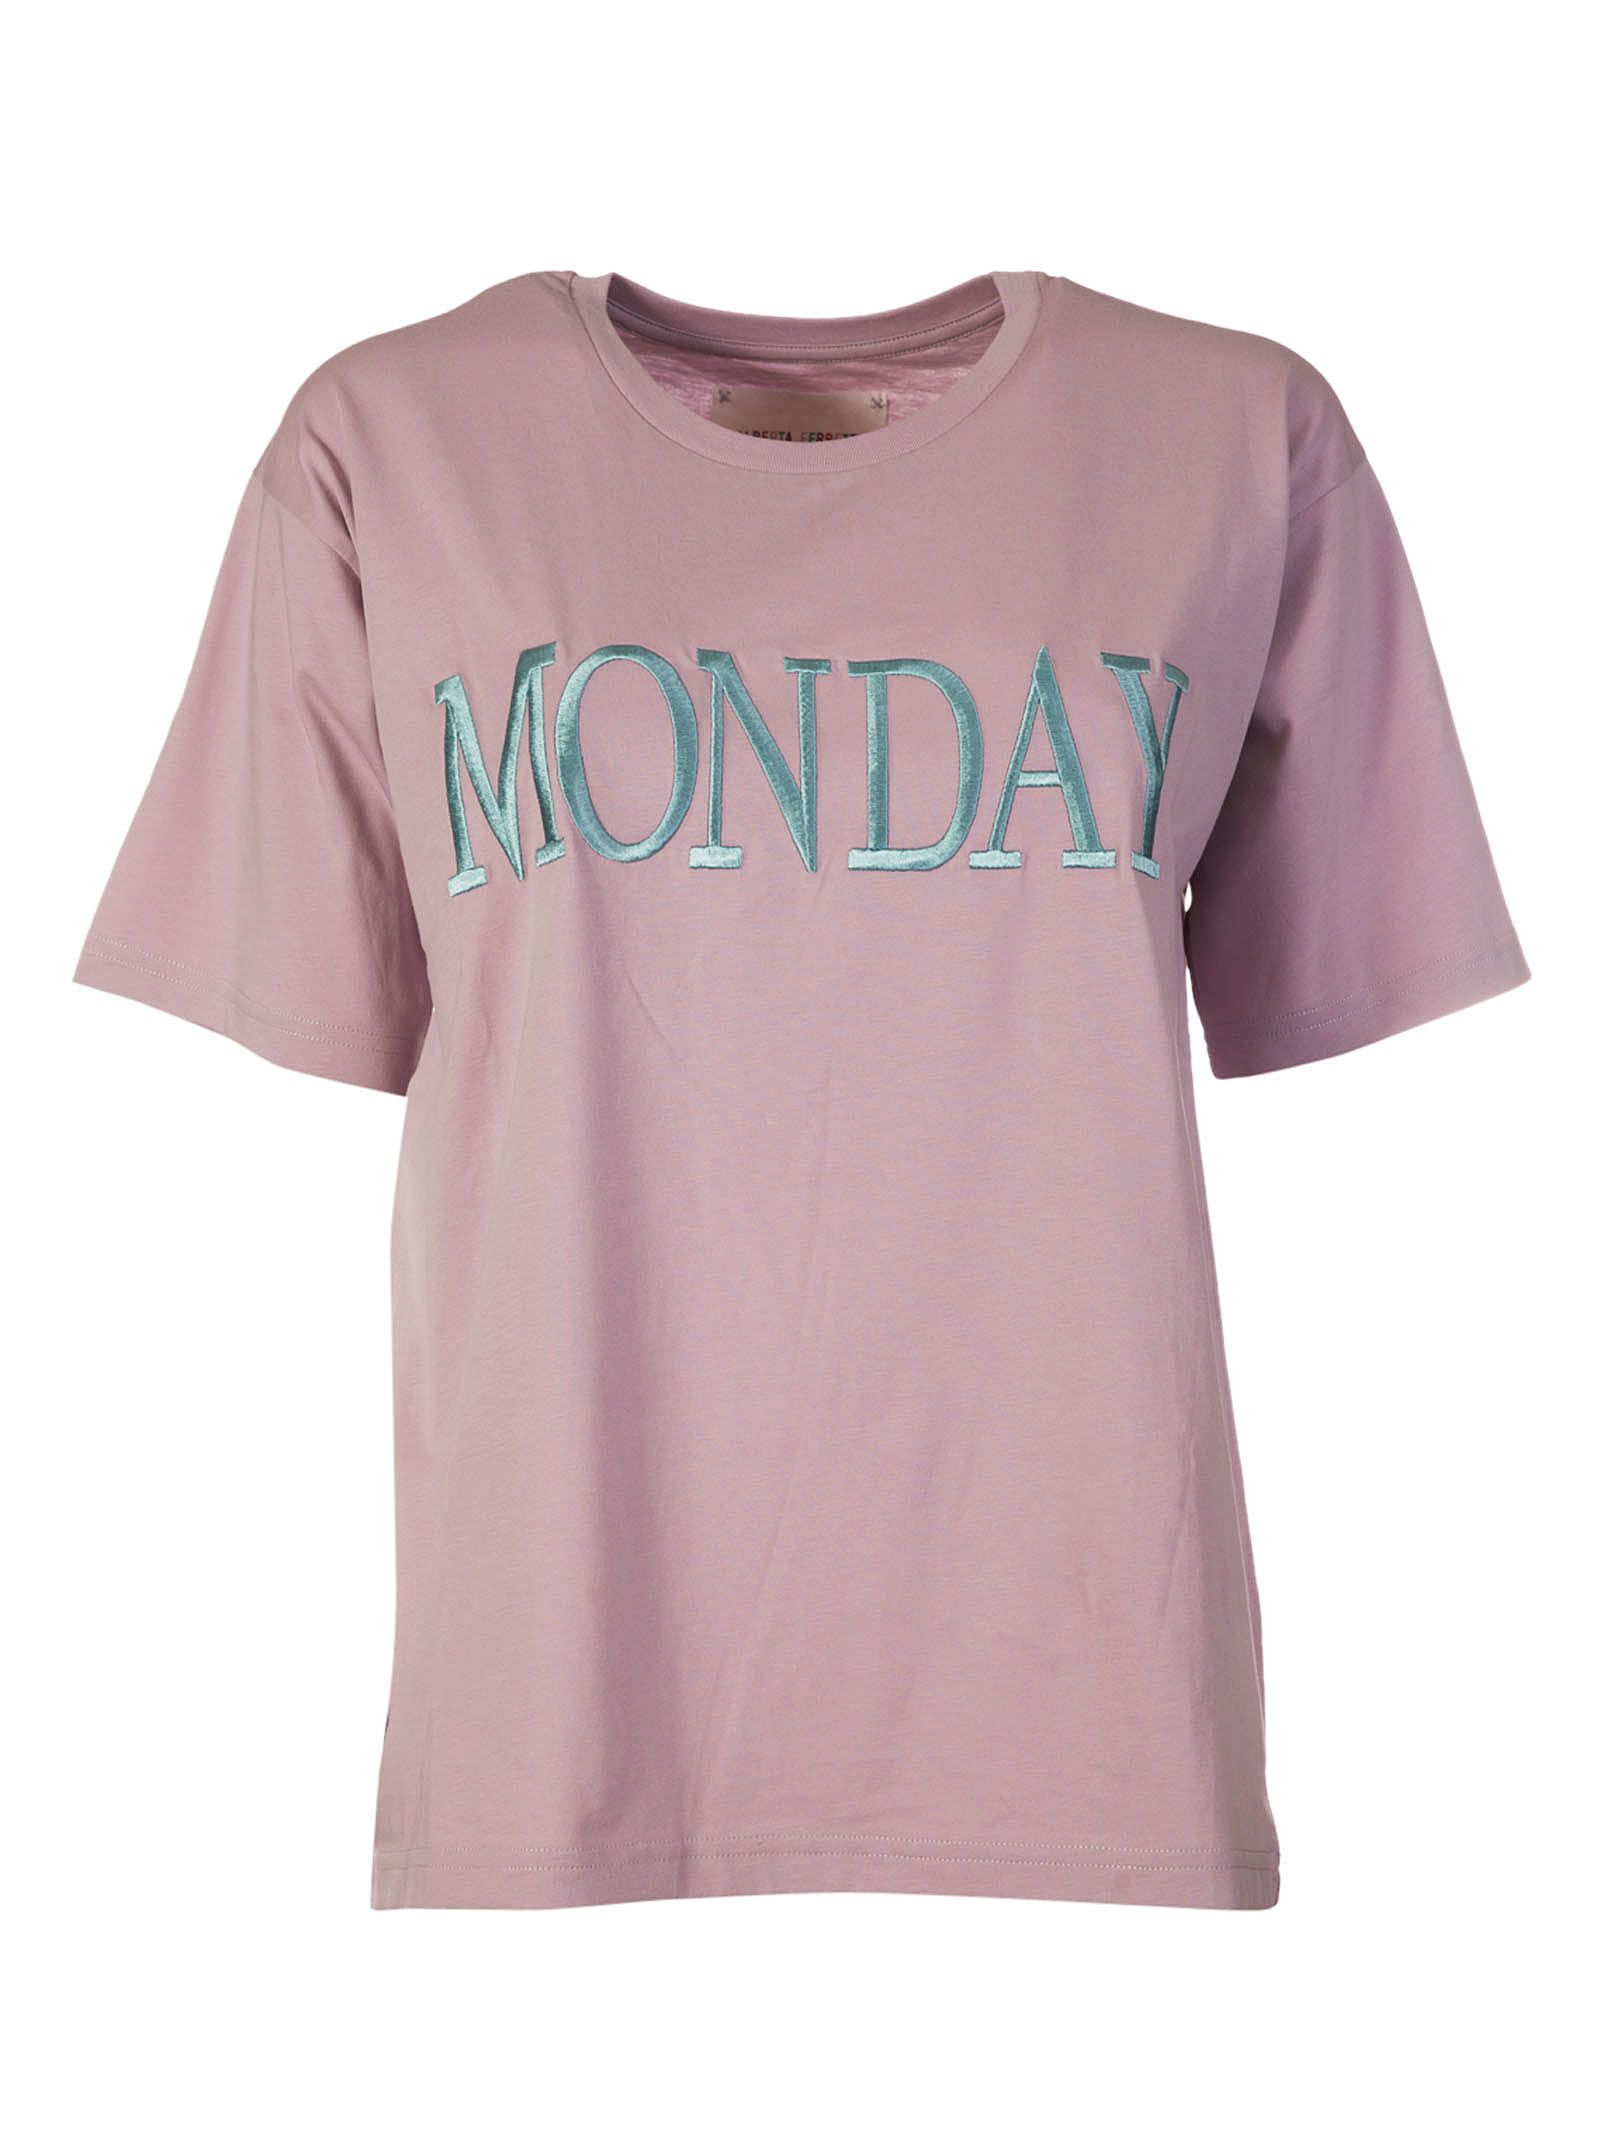 Monday T-shirt Alberta Ferretti Original To786fuL